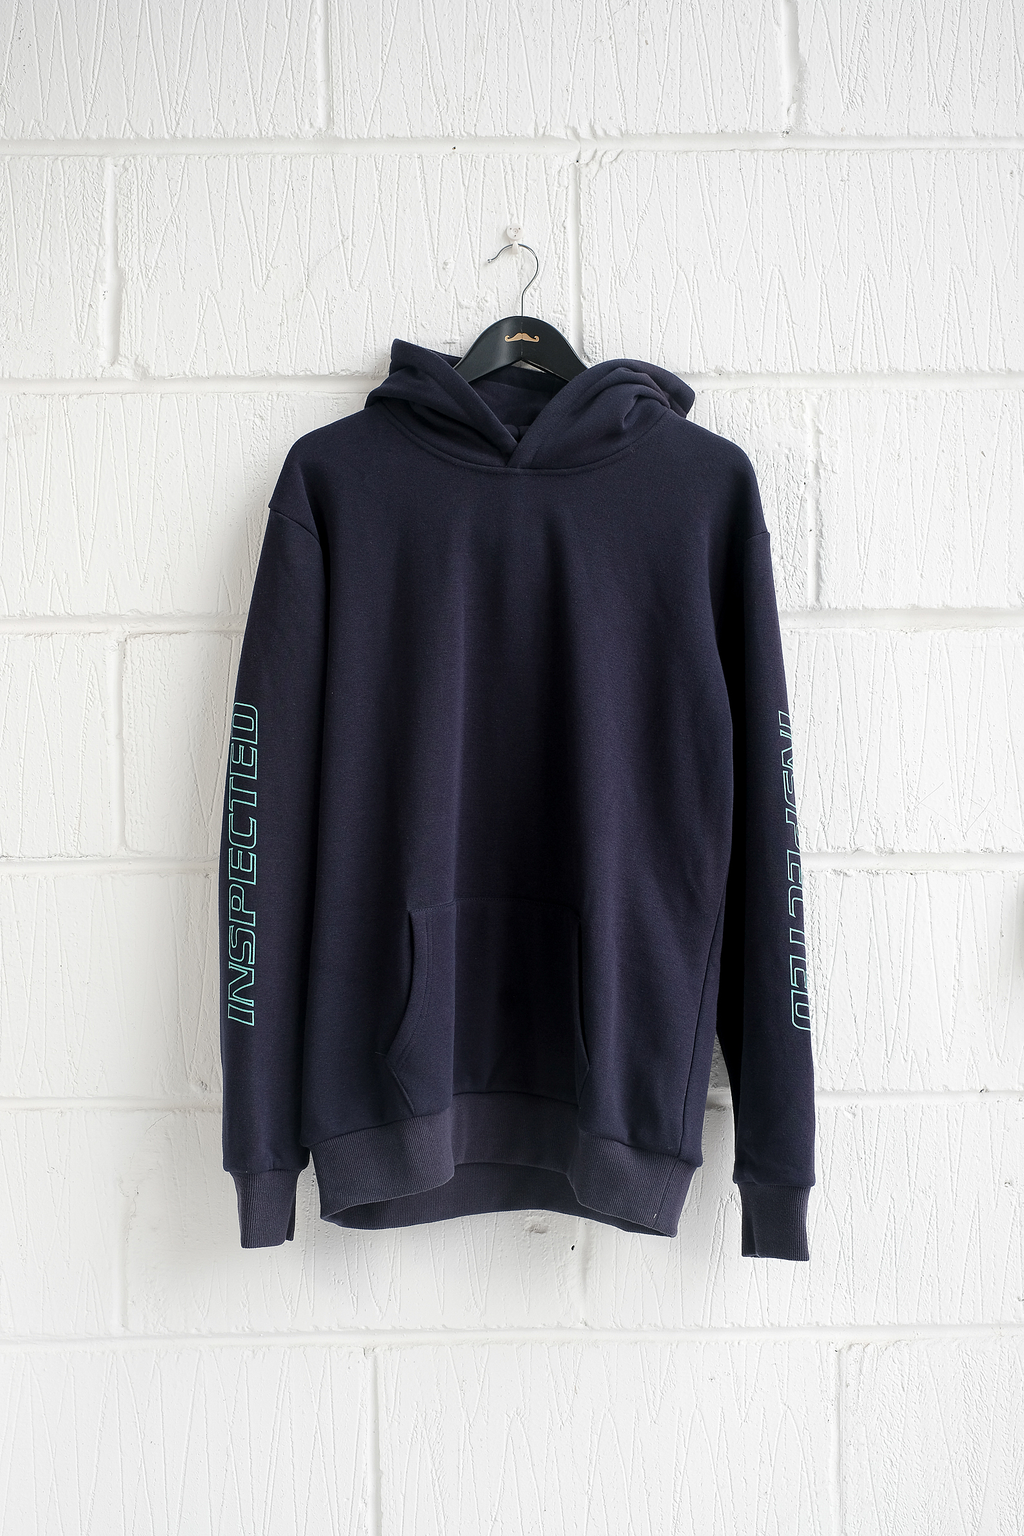 SAMPLE HOODIE — MIDNIGHT